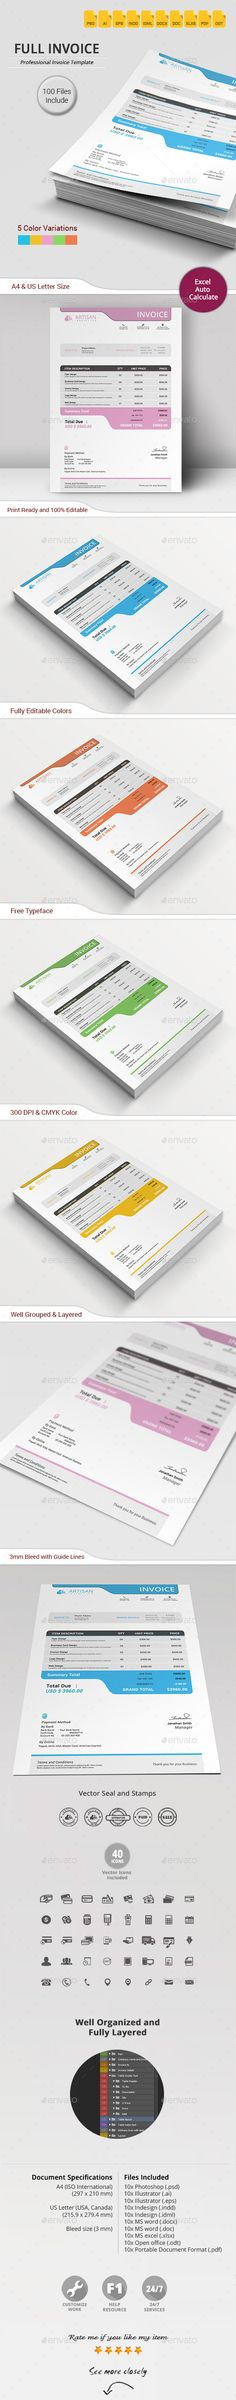 #Invoice - #Proposals & Invoices #Stationery Download here: https://graphicriver.net/item/invoice/11778374?ref=alena994